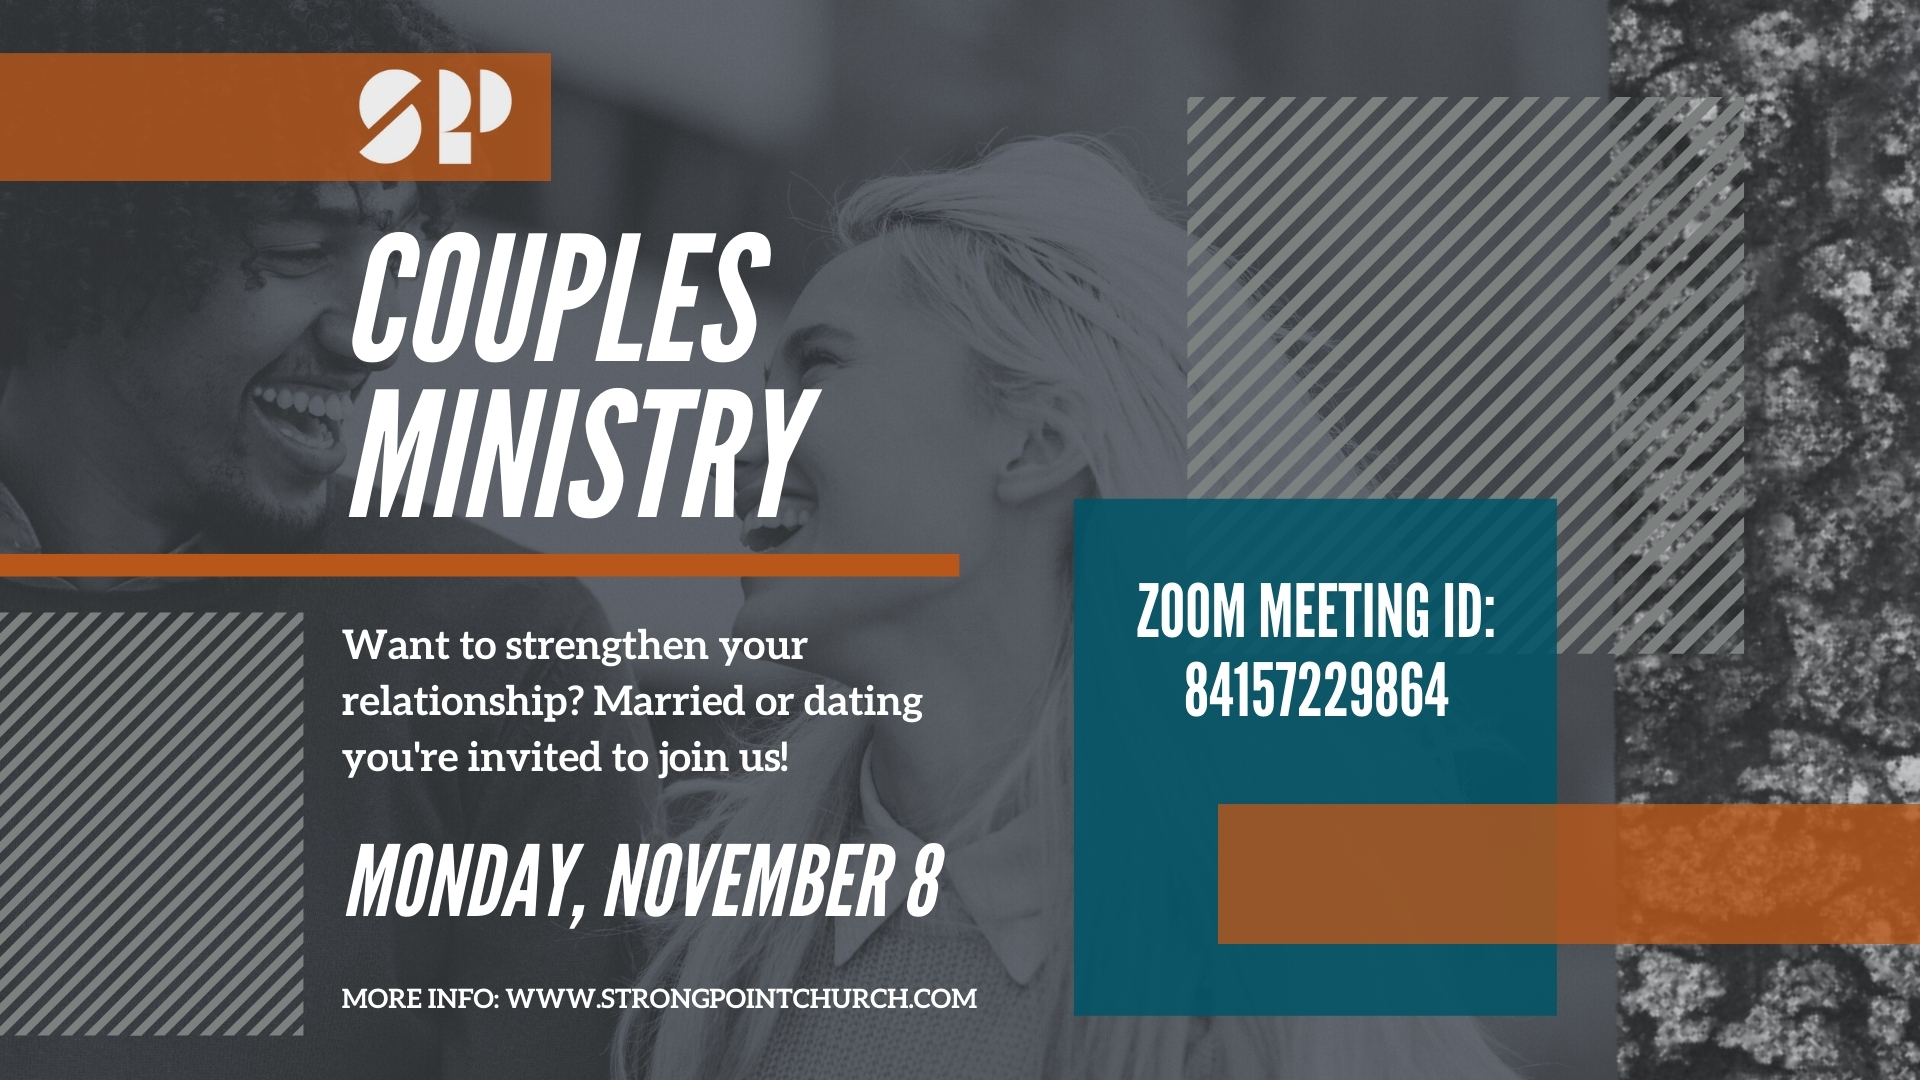 Couples Ministry